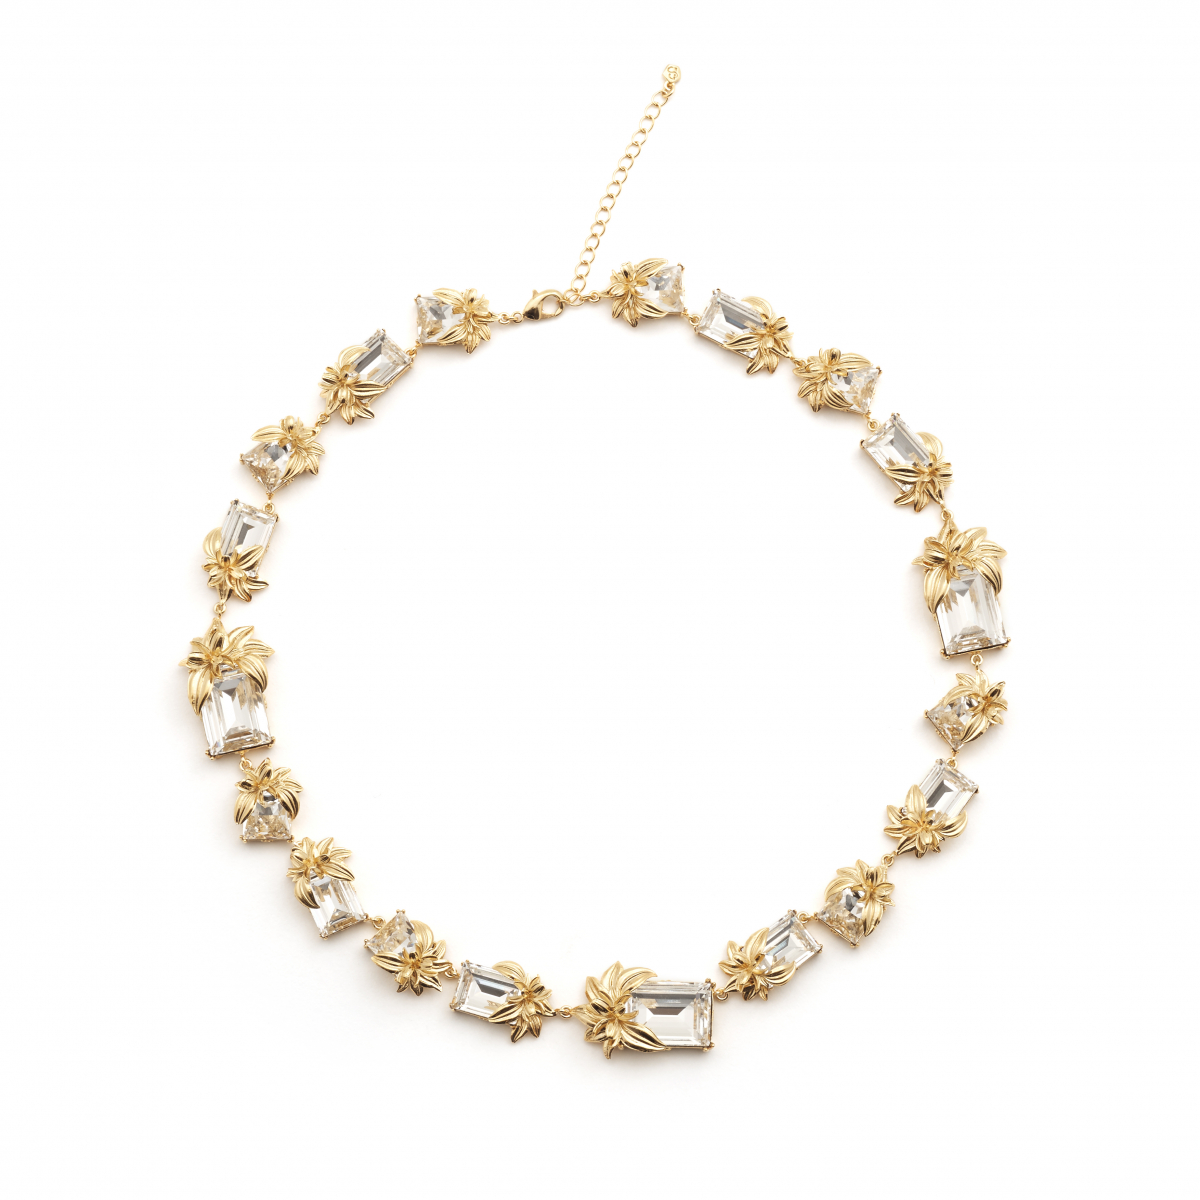 The Evelyn Edit Statement Necklace